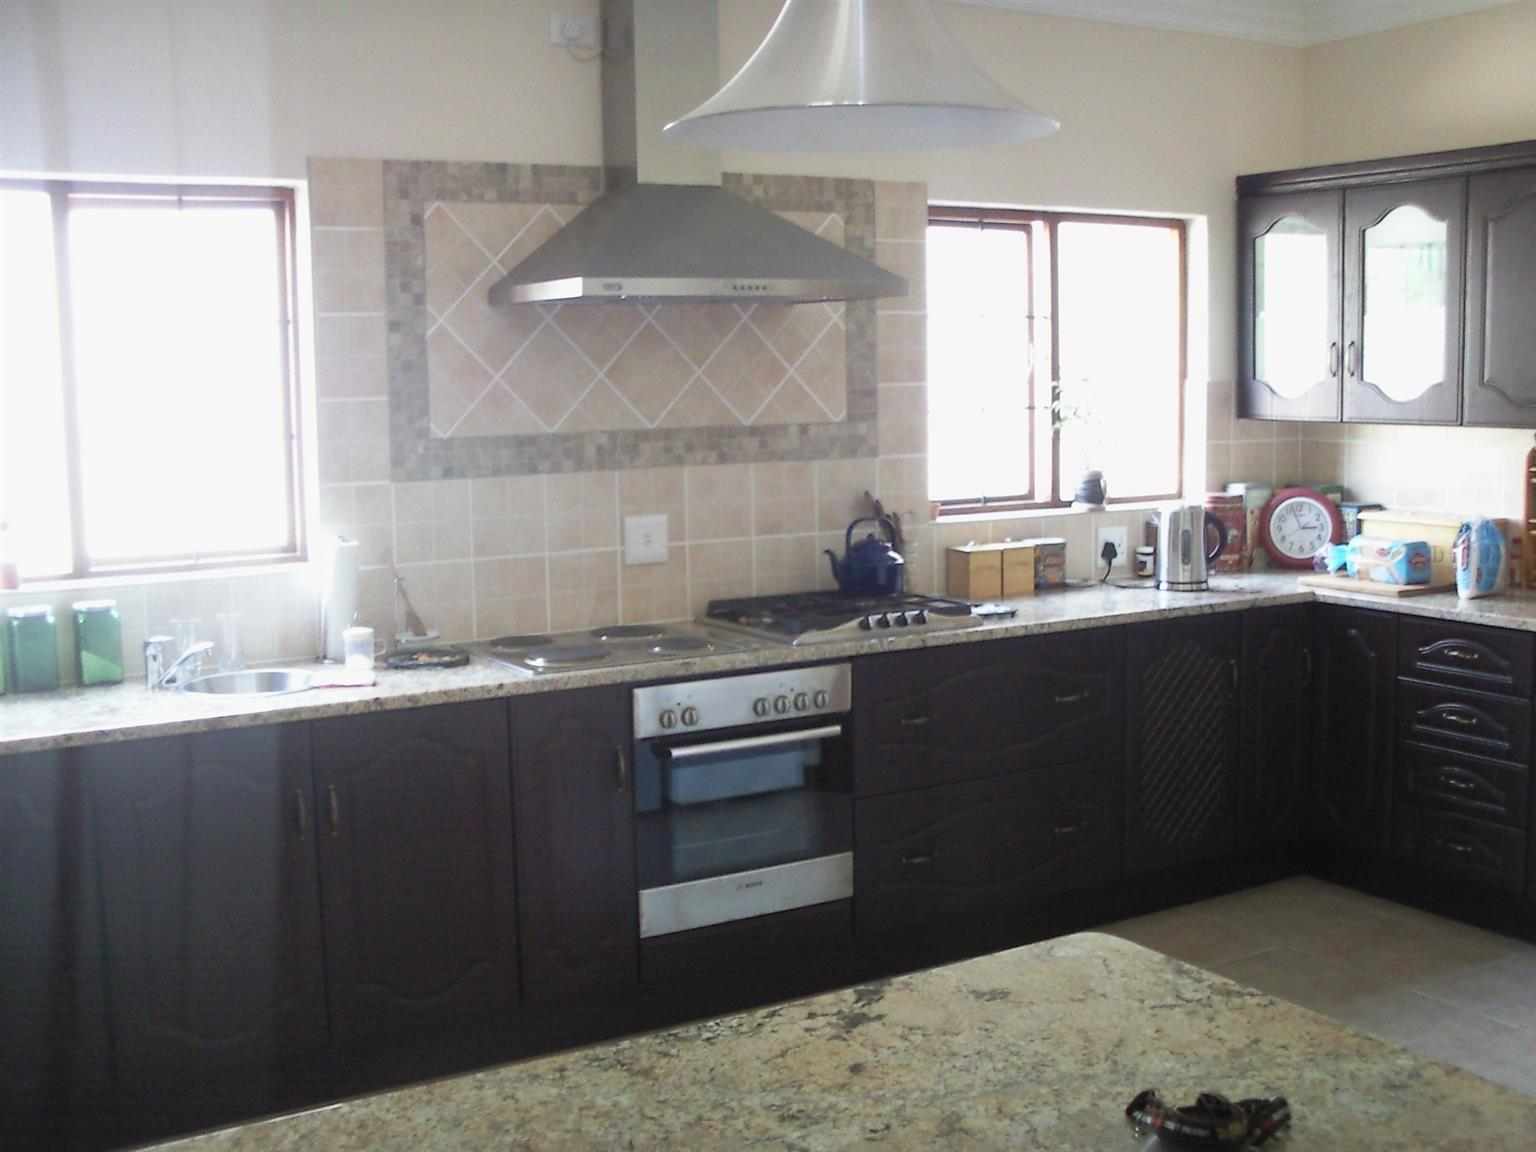 A PAINTING, BUILDING, RENOVATIONS   - HENNIE - 083 937 9263 Quality Building ,Renovations and Alterations, Painting. Bathroom and Kitchen makeovers. Maintenance and General house repairs. Hennie 083 937 9263